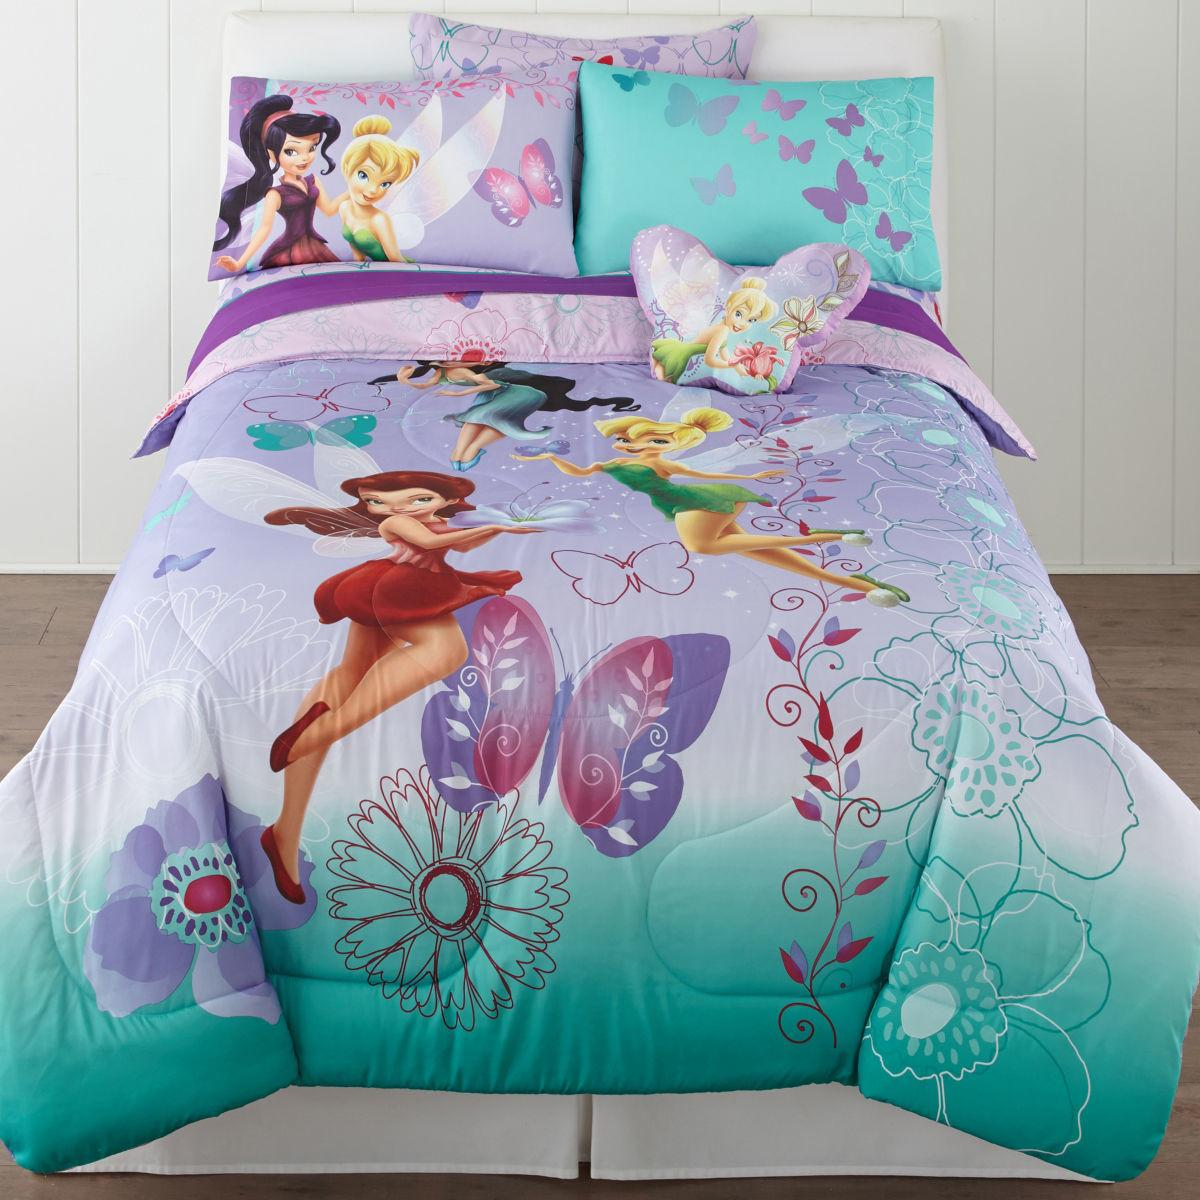 Brilliant Serene Tinkerbell Bedroom Decor